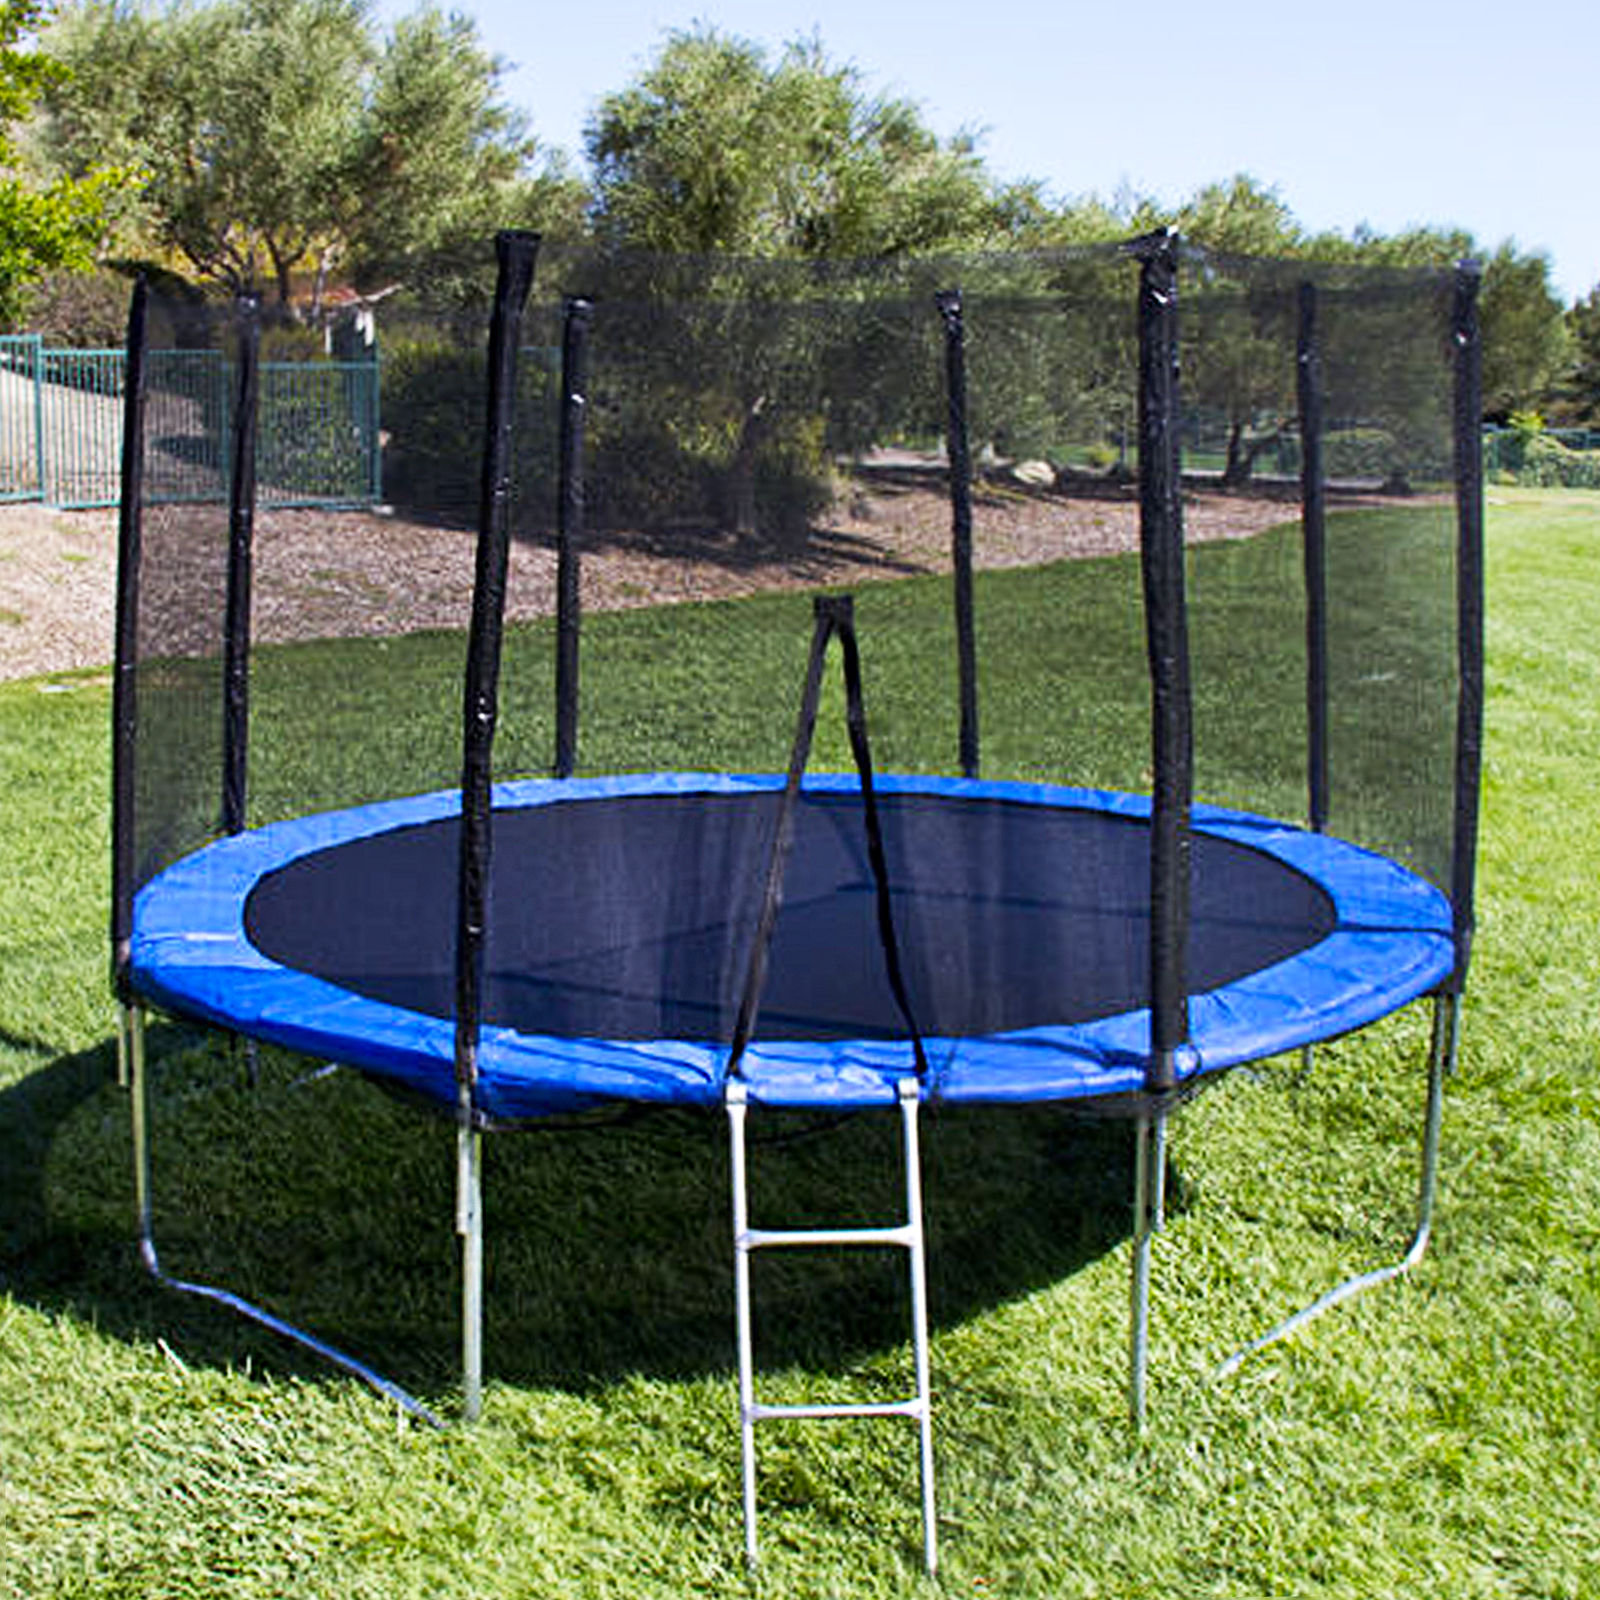 Healthy Benefits Of Jumping In A Trampoline